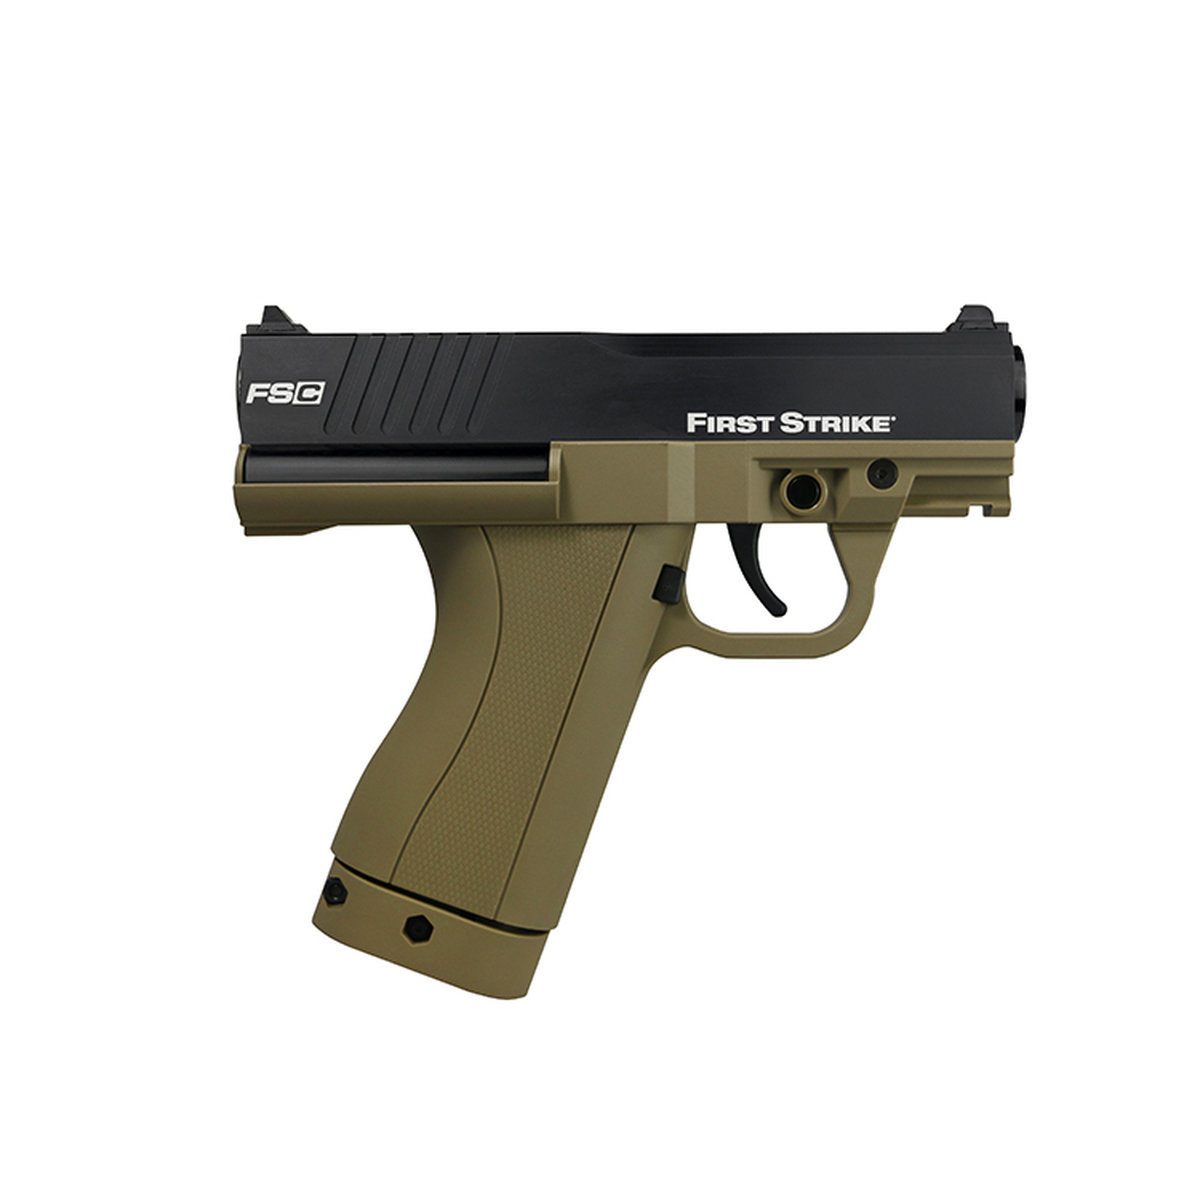 View larger image of First Strike FSC Compact Paintball Pistol with 2 Mags - Tan